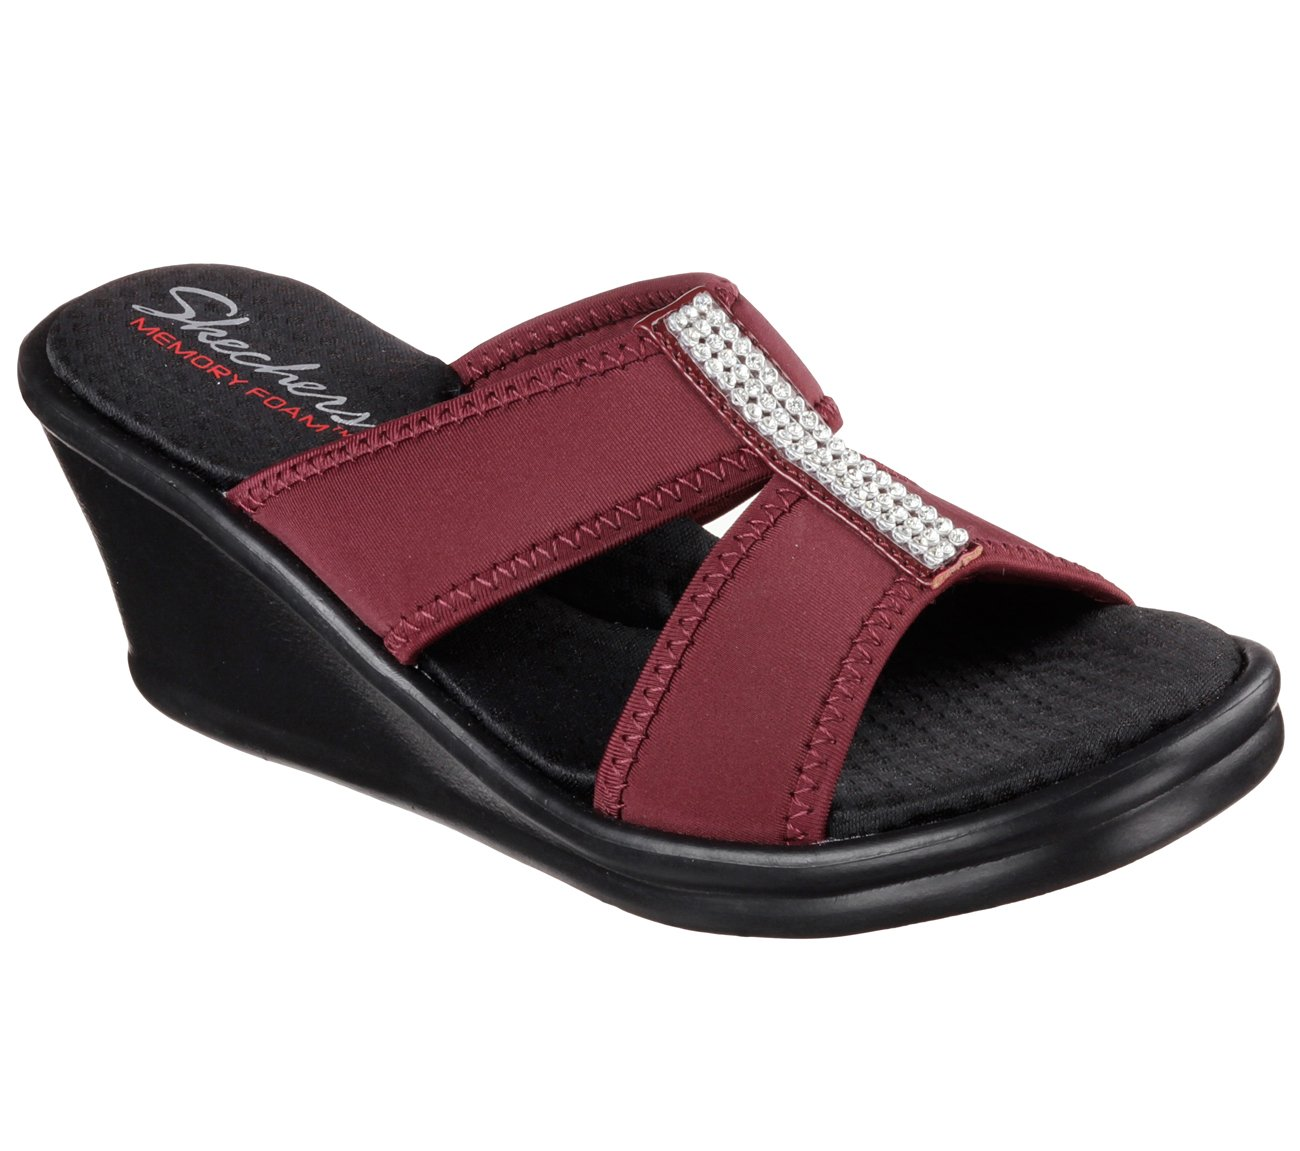 Skechers Women's Rumblers 2 Strap Slide Wedge Sandal